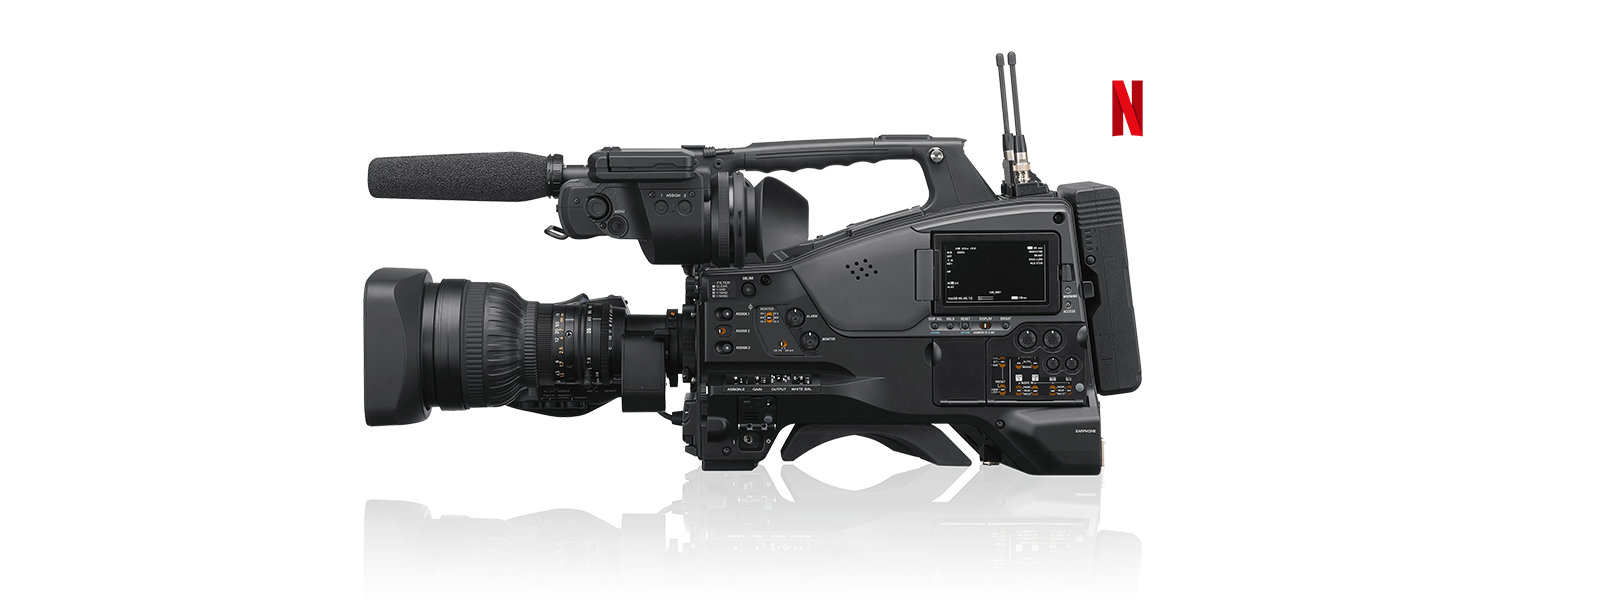 PXW-Z750 camcorder with Netflix Post Technology Alliance logo